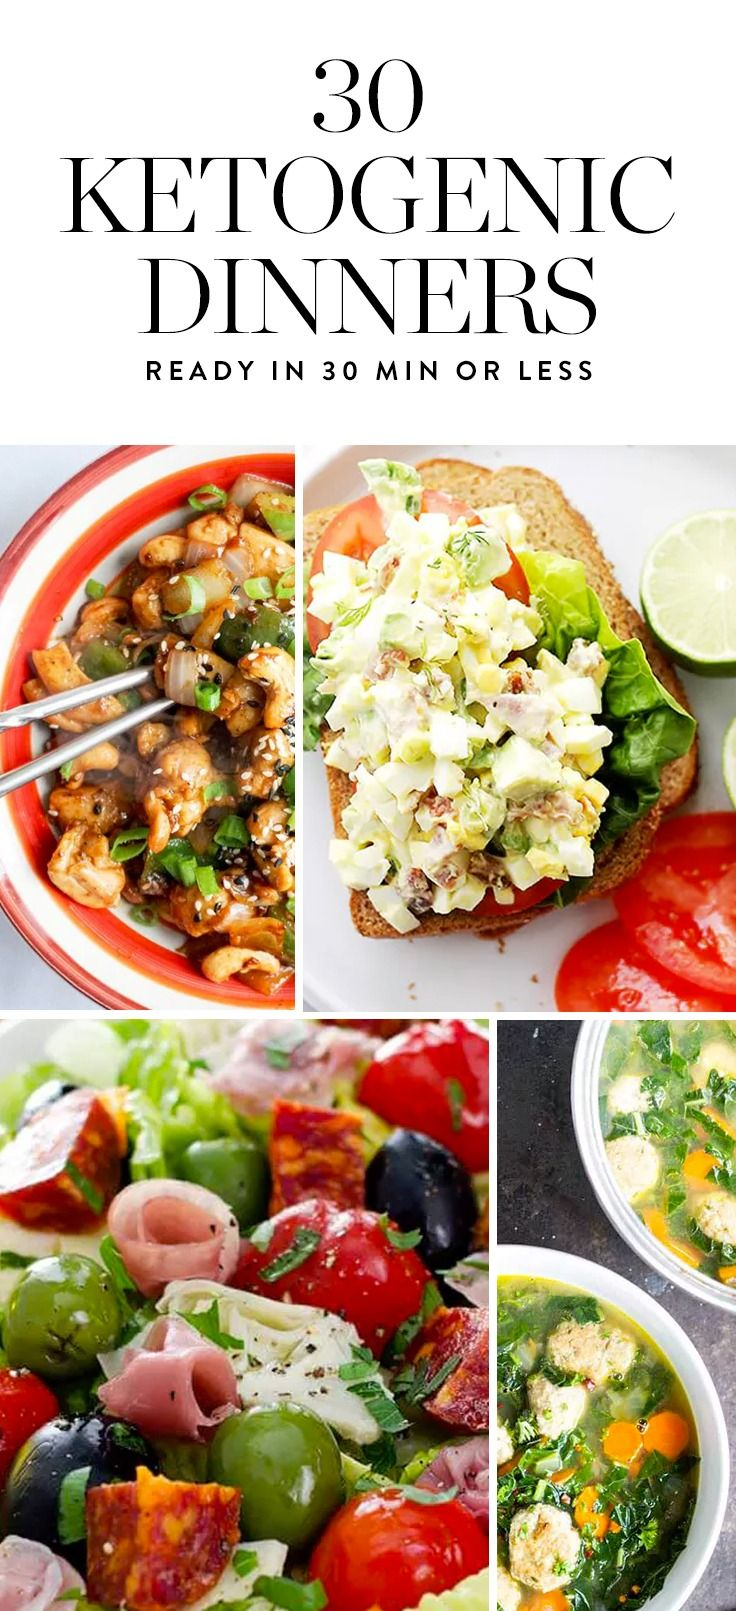 40 Ketogenic Dinner Recipes You Can Make in 30 Minutes or